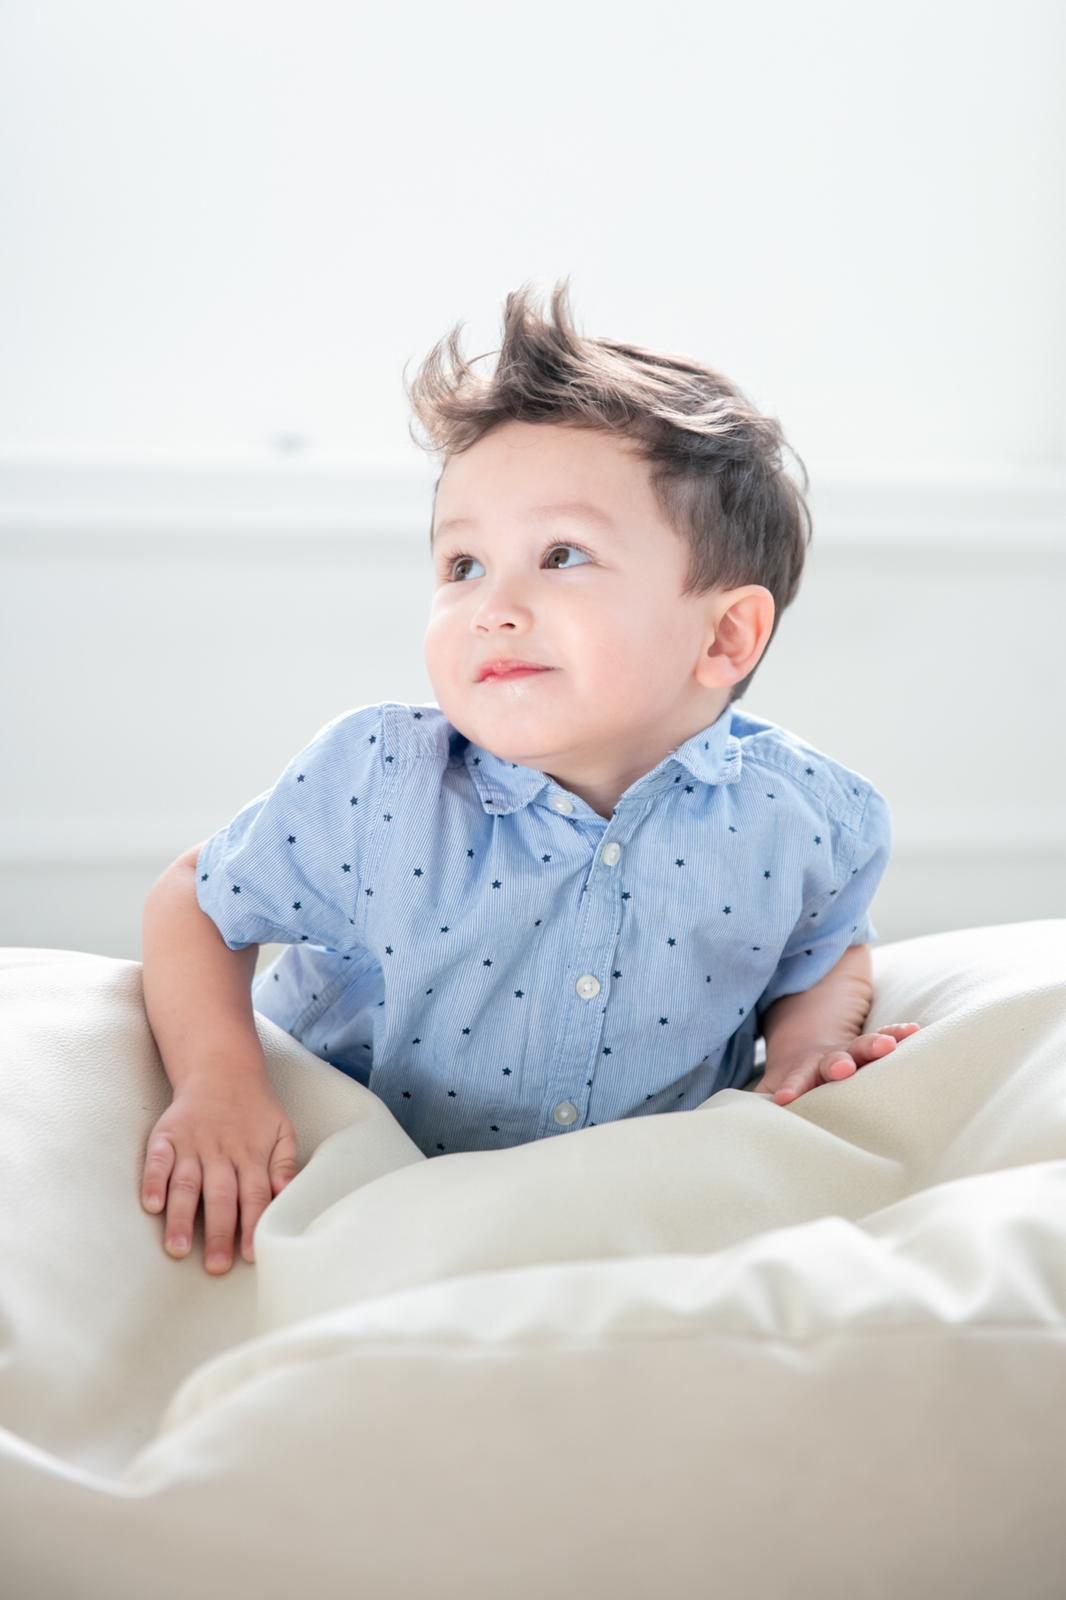 Seemore Kids Model Kaden M